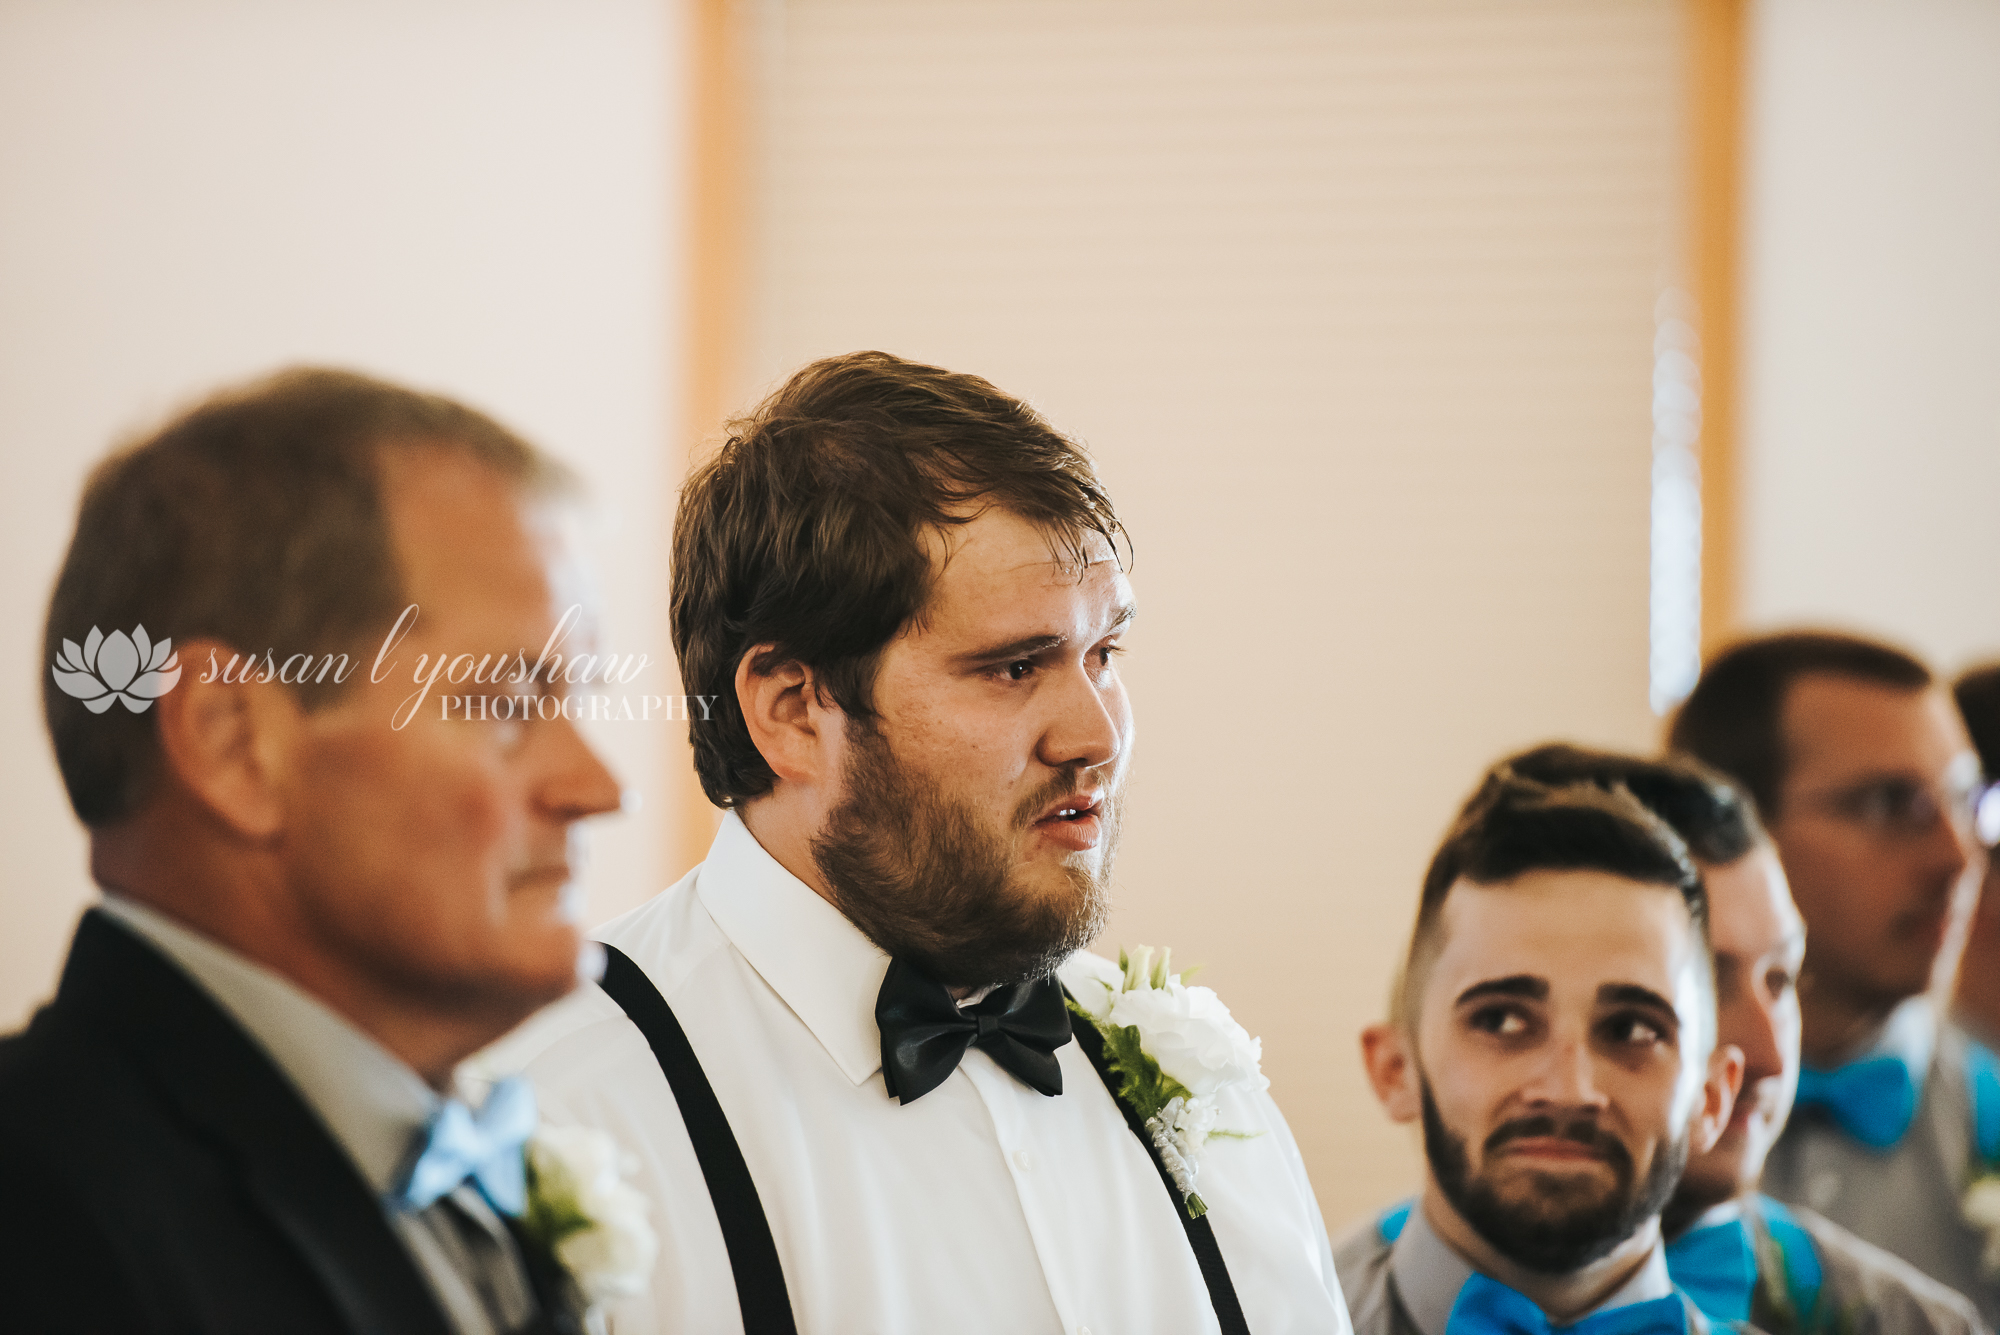 Katelyn and Wes Wedding Photos 07-13-2019 SLY Photography-52.jpg